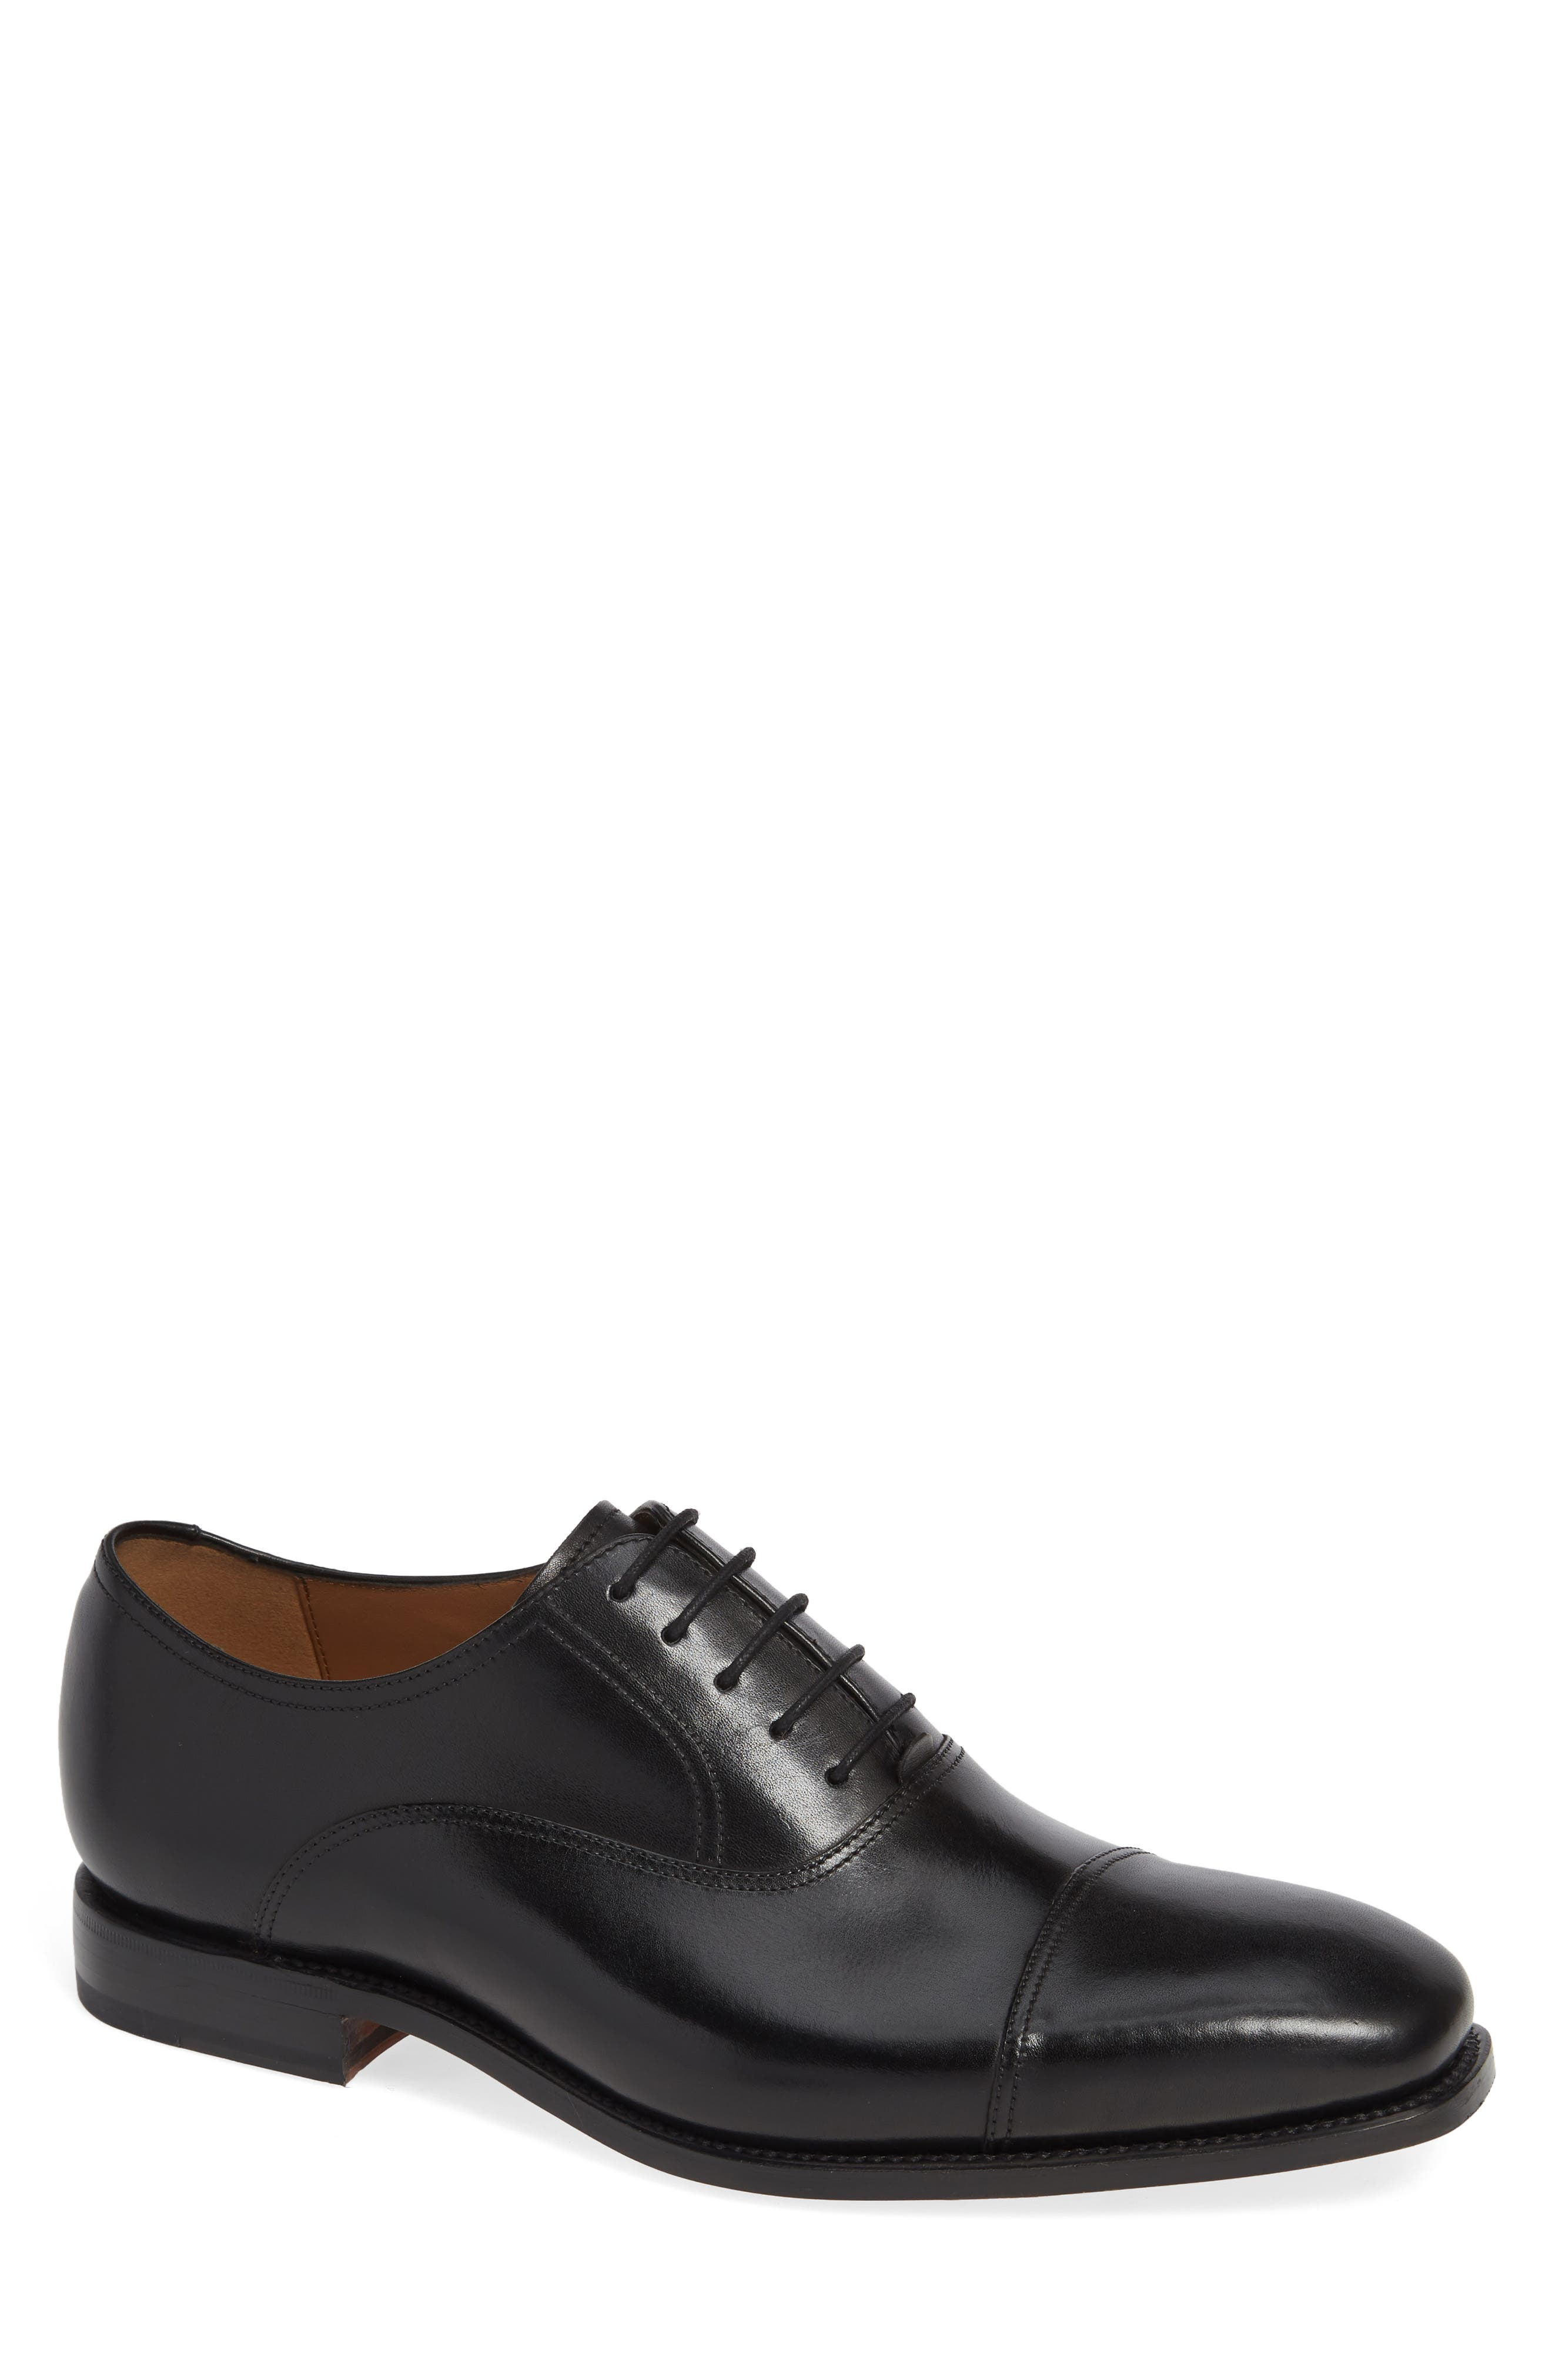 Tiburon Cap Toe Oxford,                         Main,                         color, BLACK LEATHER